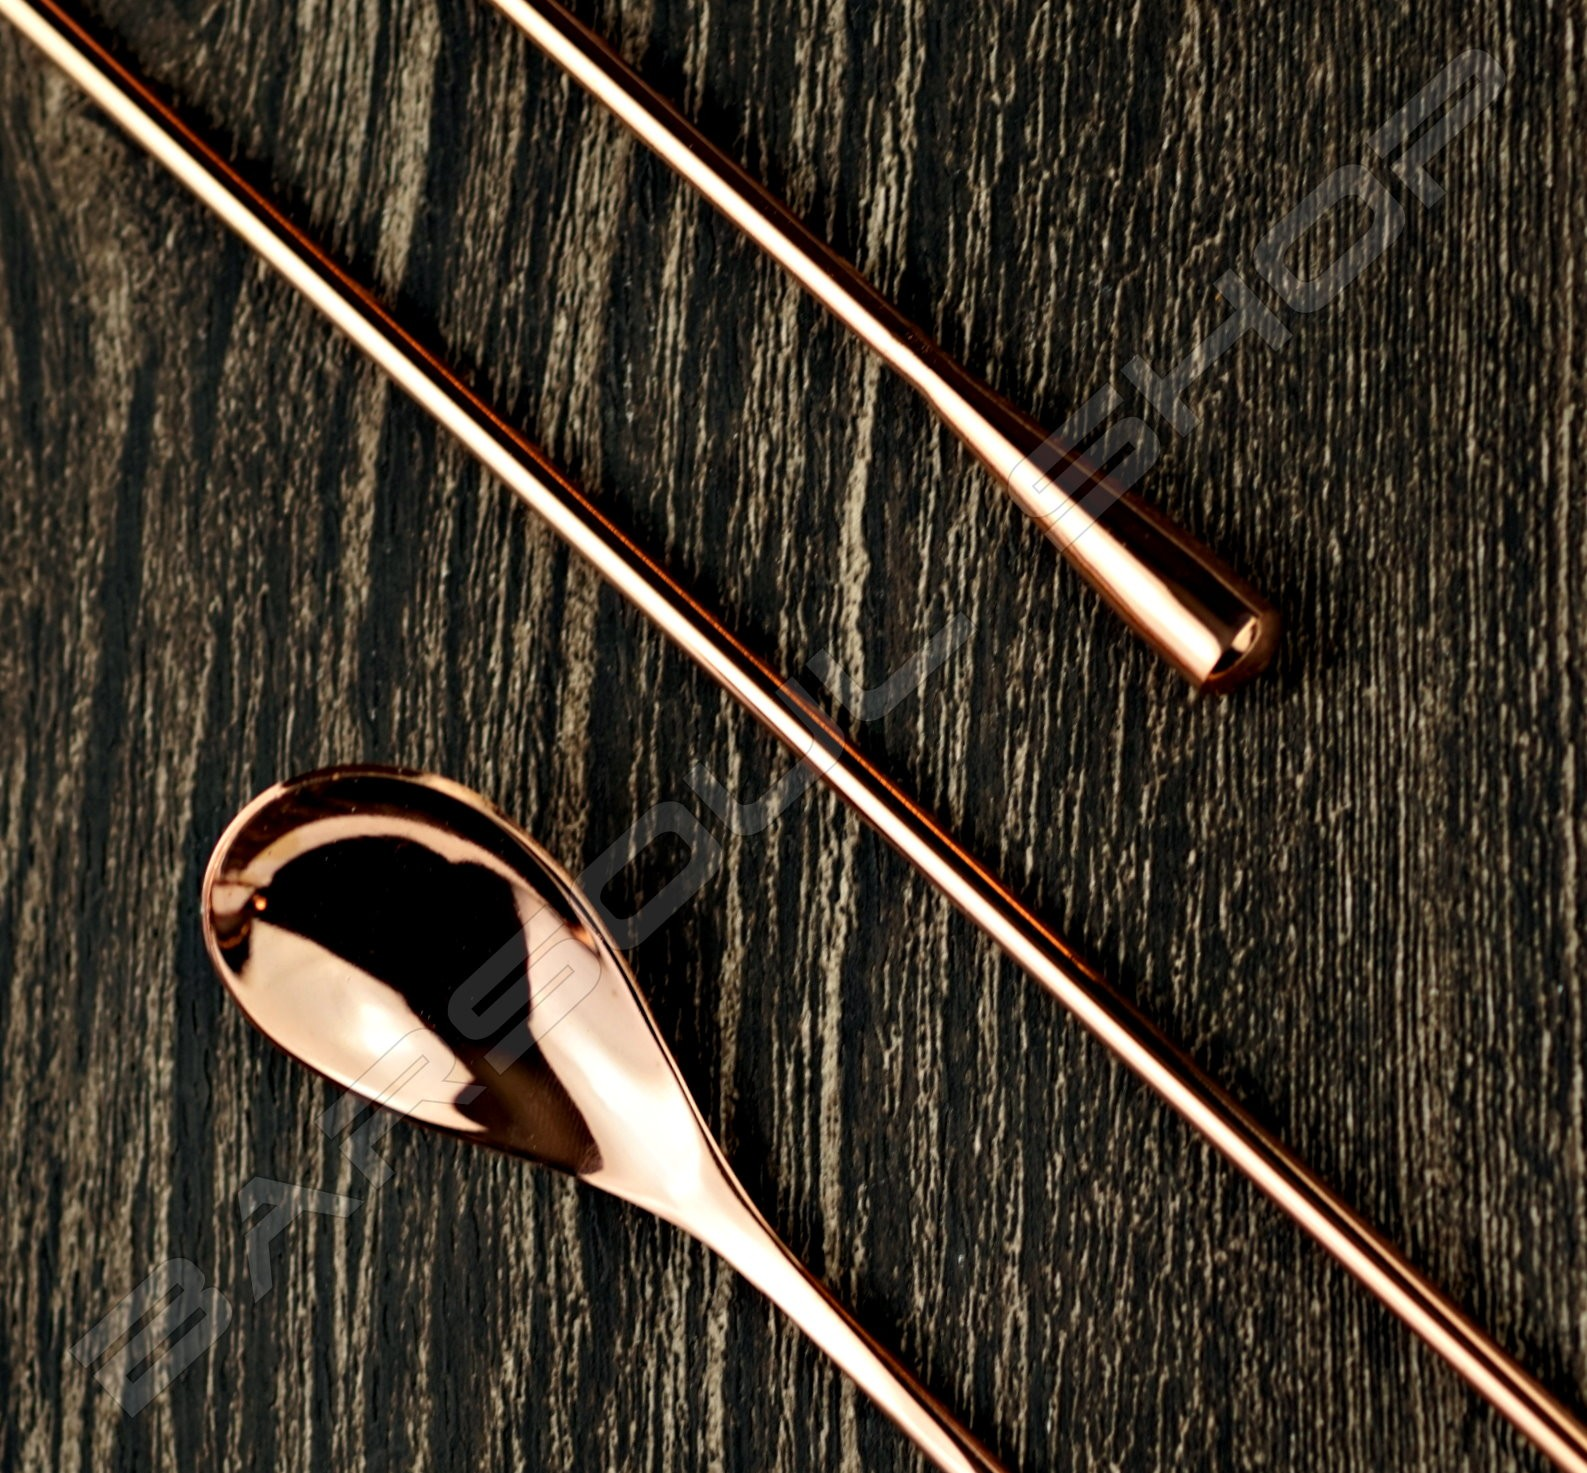 40cm 圓頭圓身吧叉匙(玫瑰金) Special Smooth body barspoon(rose gold)